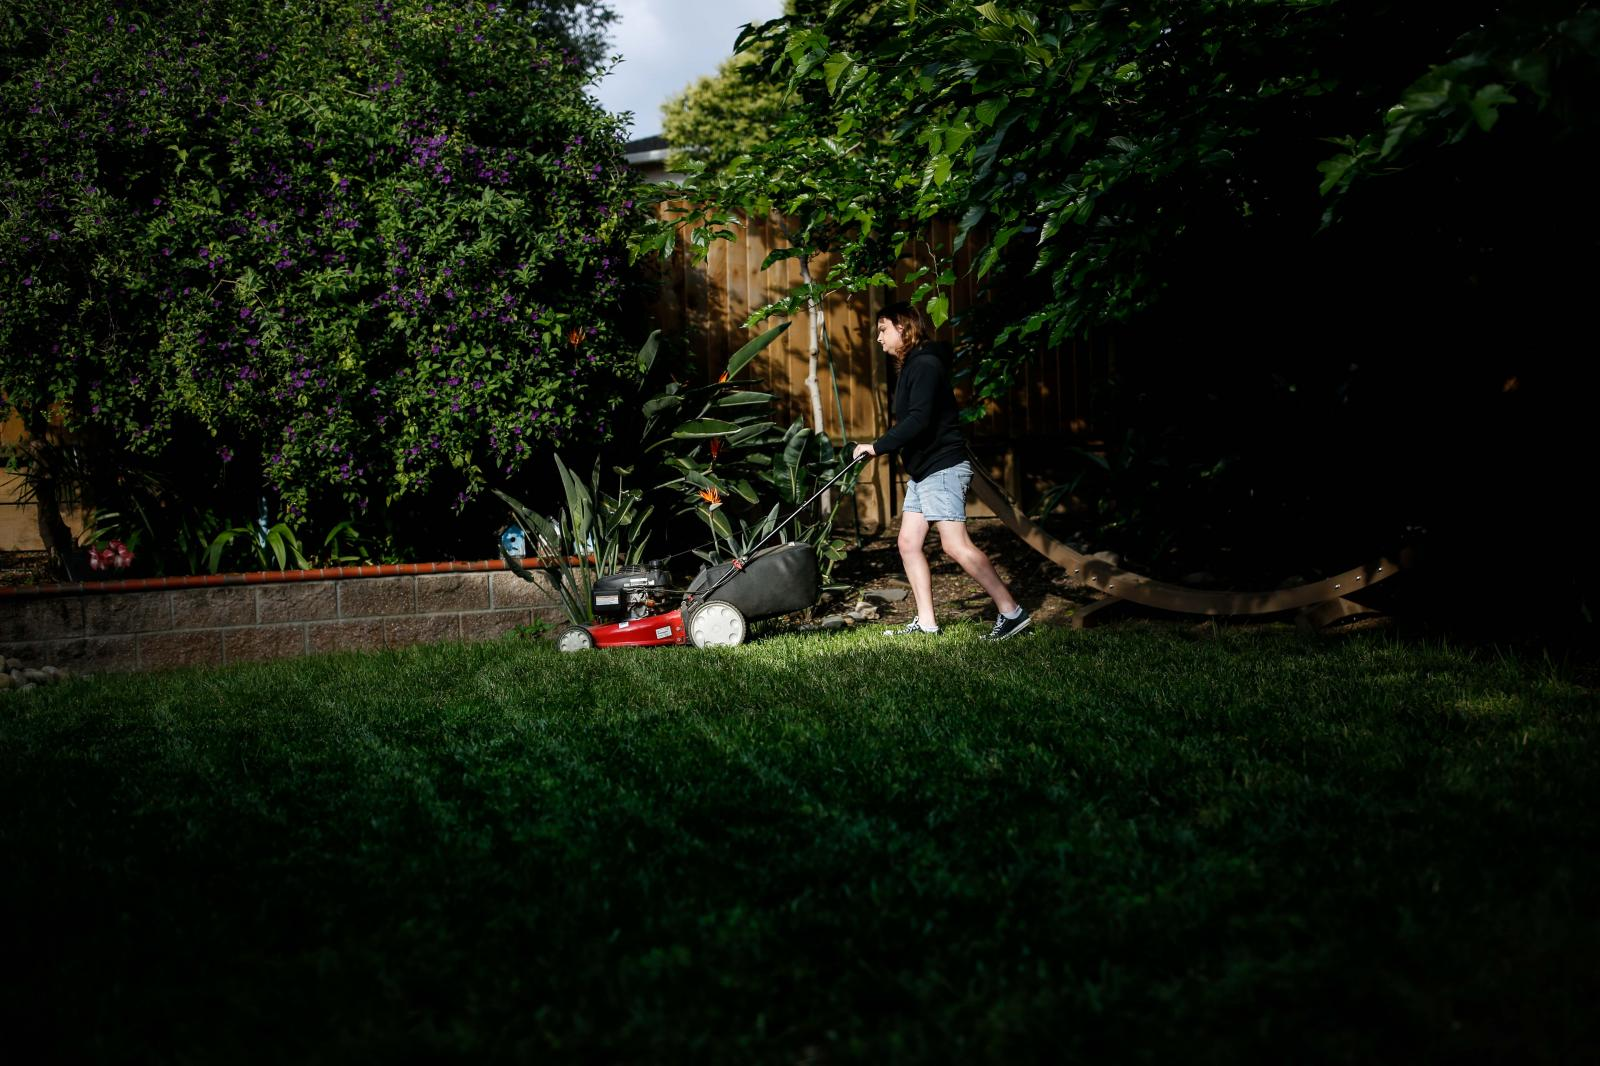 Pia Cruz, 22, mows the lawn at her parent's home on Thursday, May 24, 2019 in San Jose, Calif.